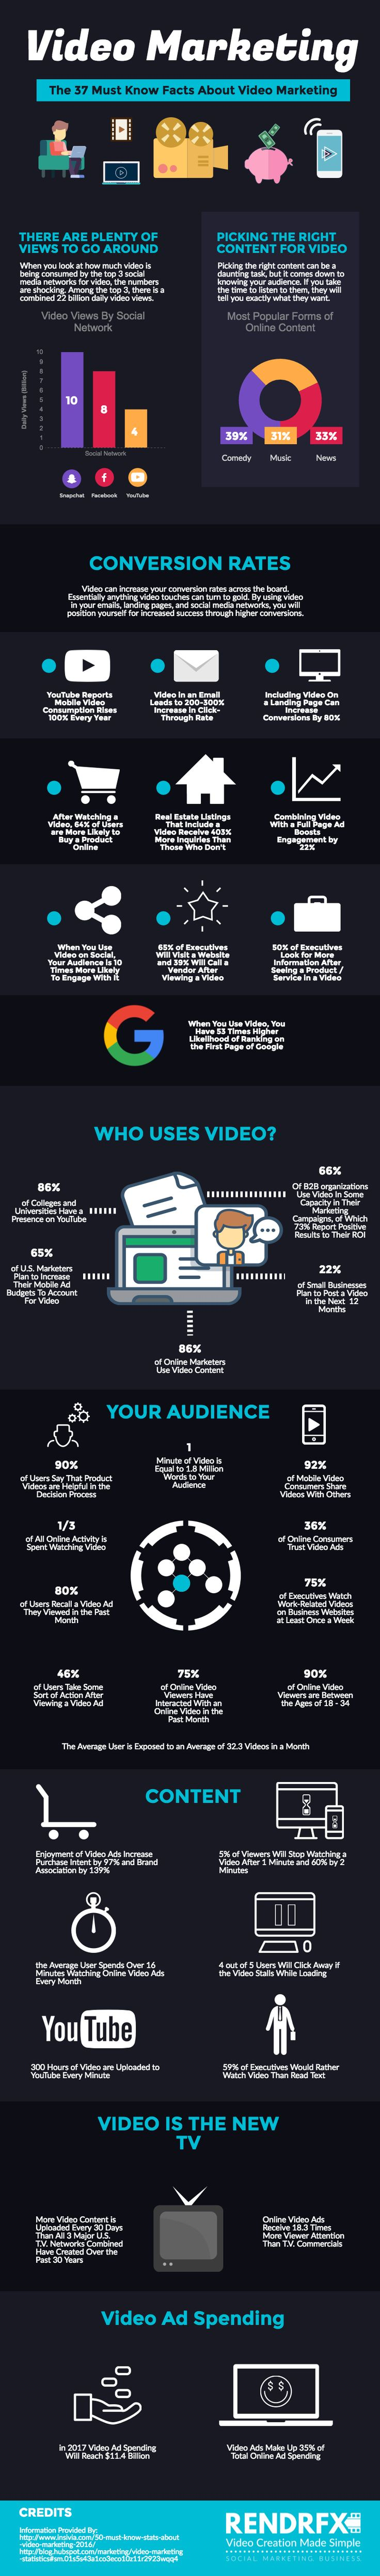 37 Video Marketing Statistics You Need To Know For 2017 [Infographic] http://www.rendrfx.com/video-marketing-statistics #VideoMarketing #SocialMediaMarketing #Video